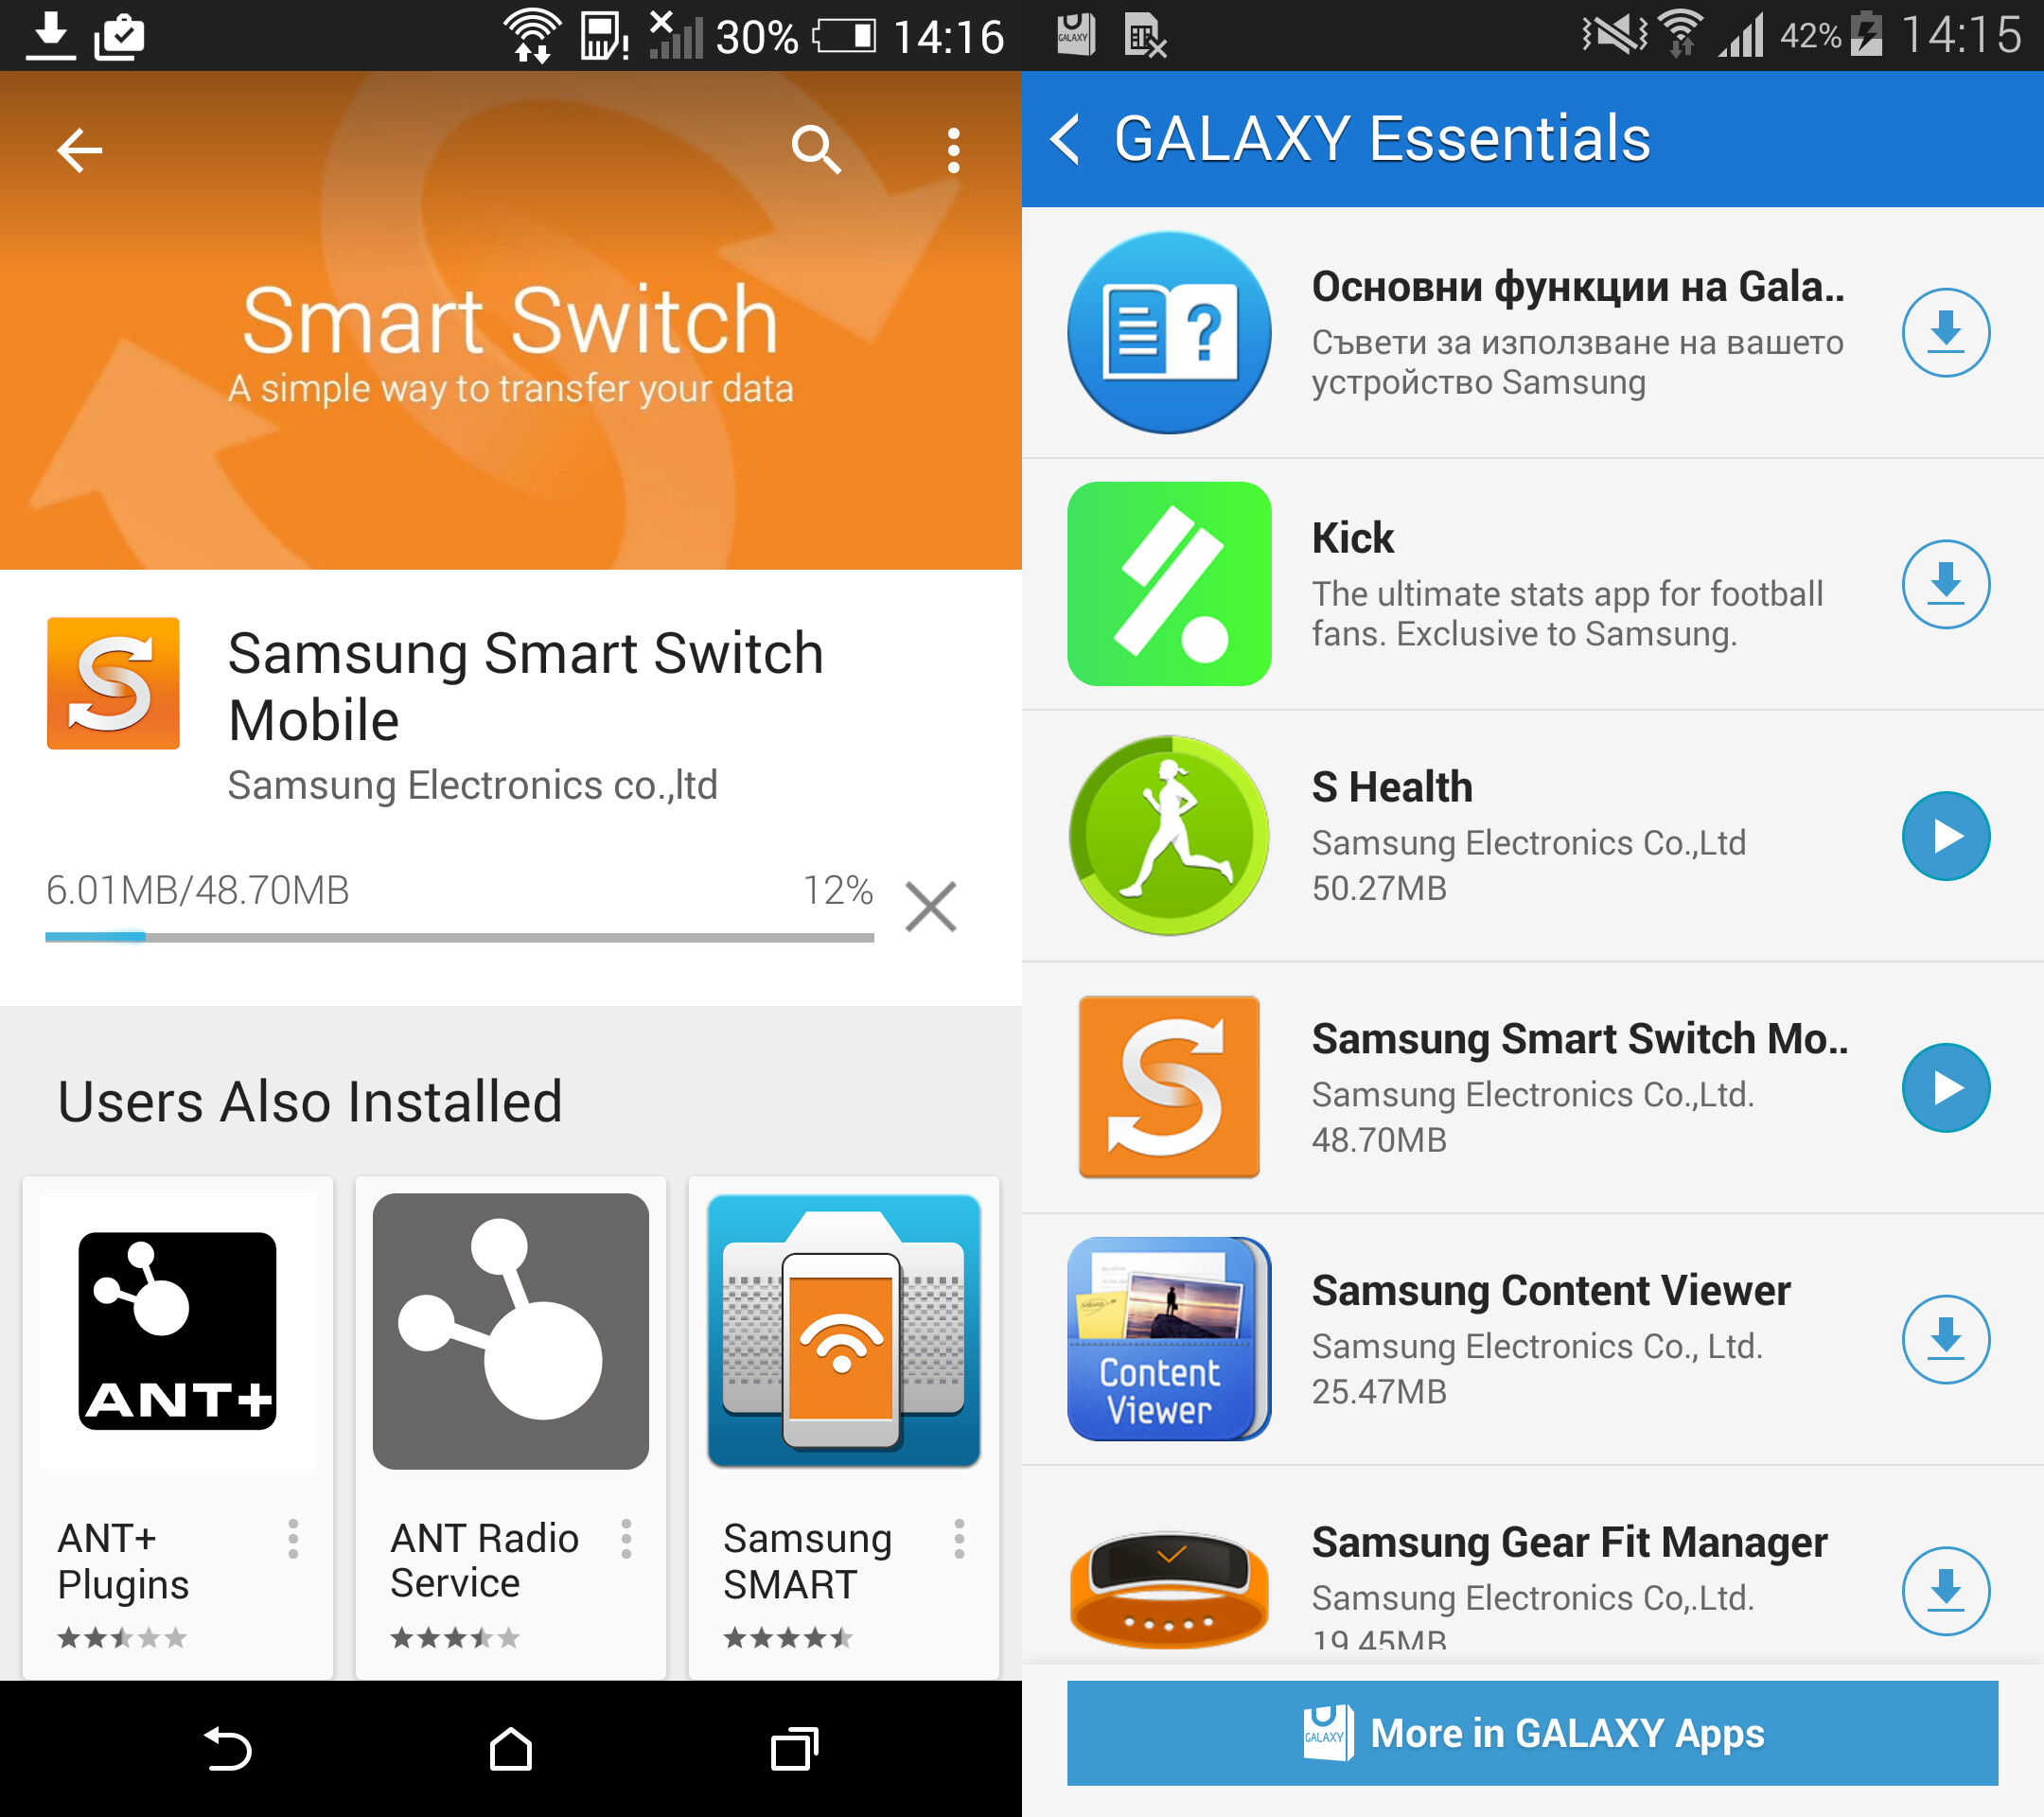 How to use Samsung's Smart Switch to move to a Galaxy smartphone